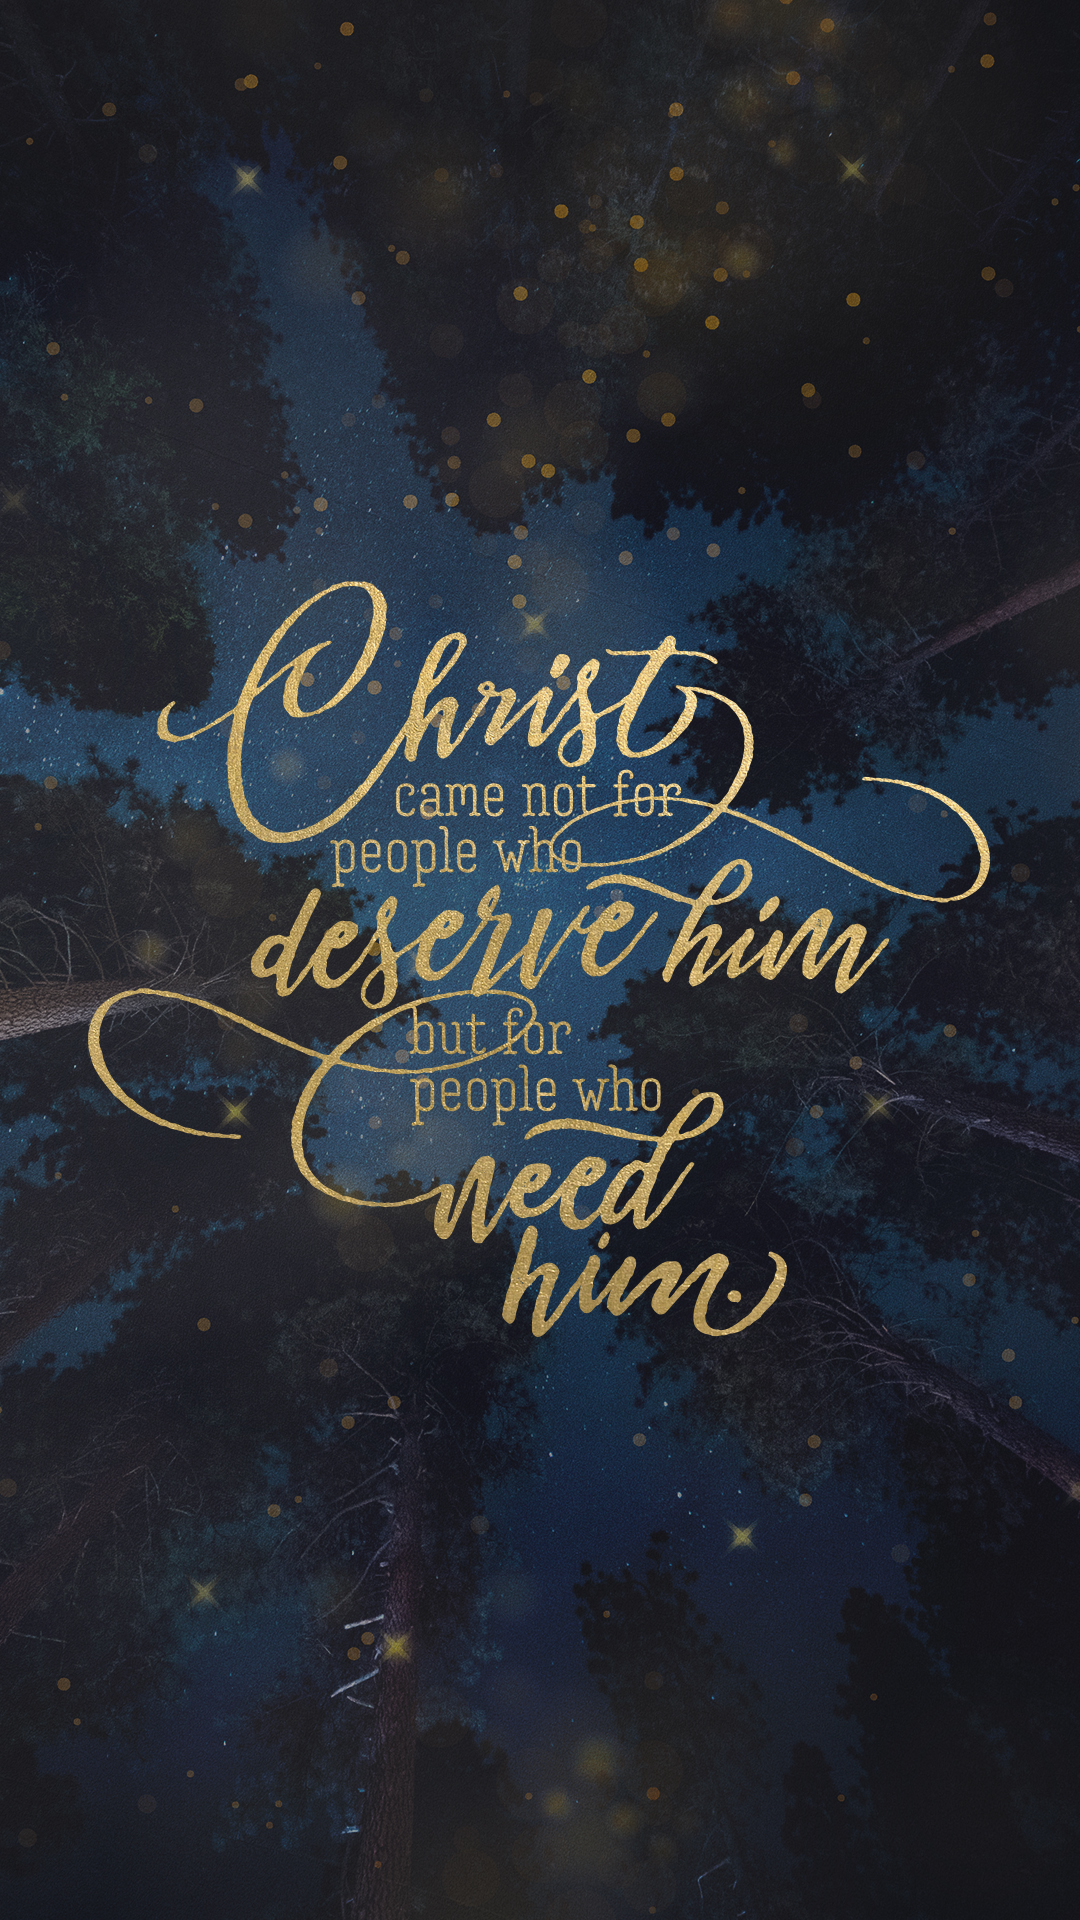 The True Meaning Of Christmas.The True Meaning Of Christmas Capital Church